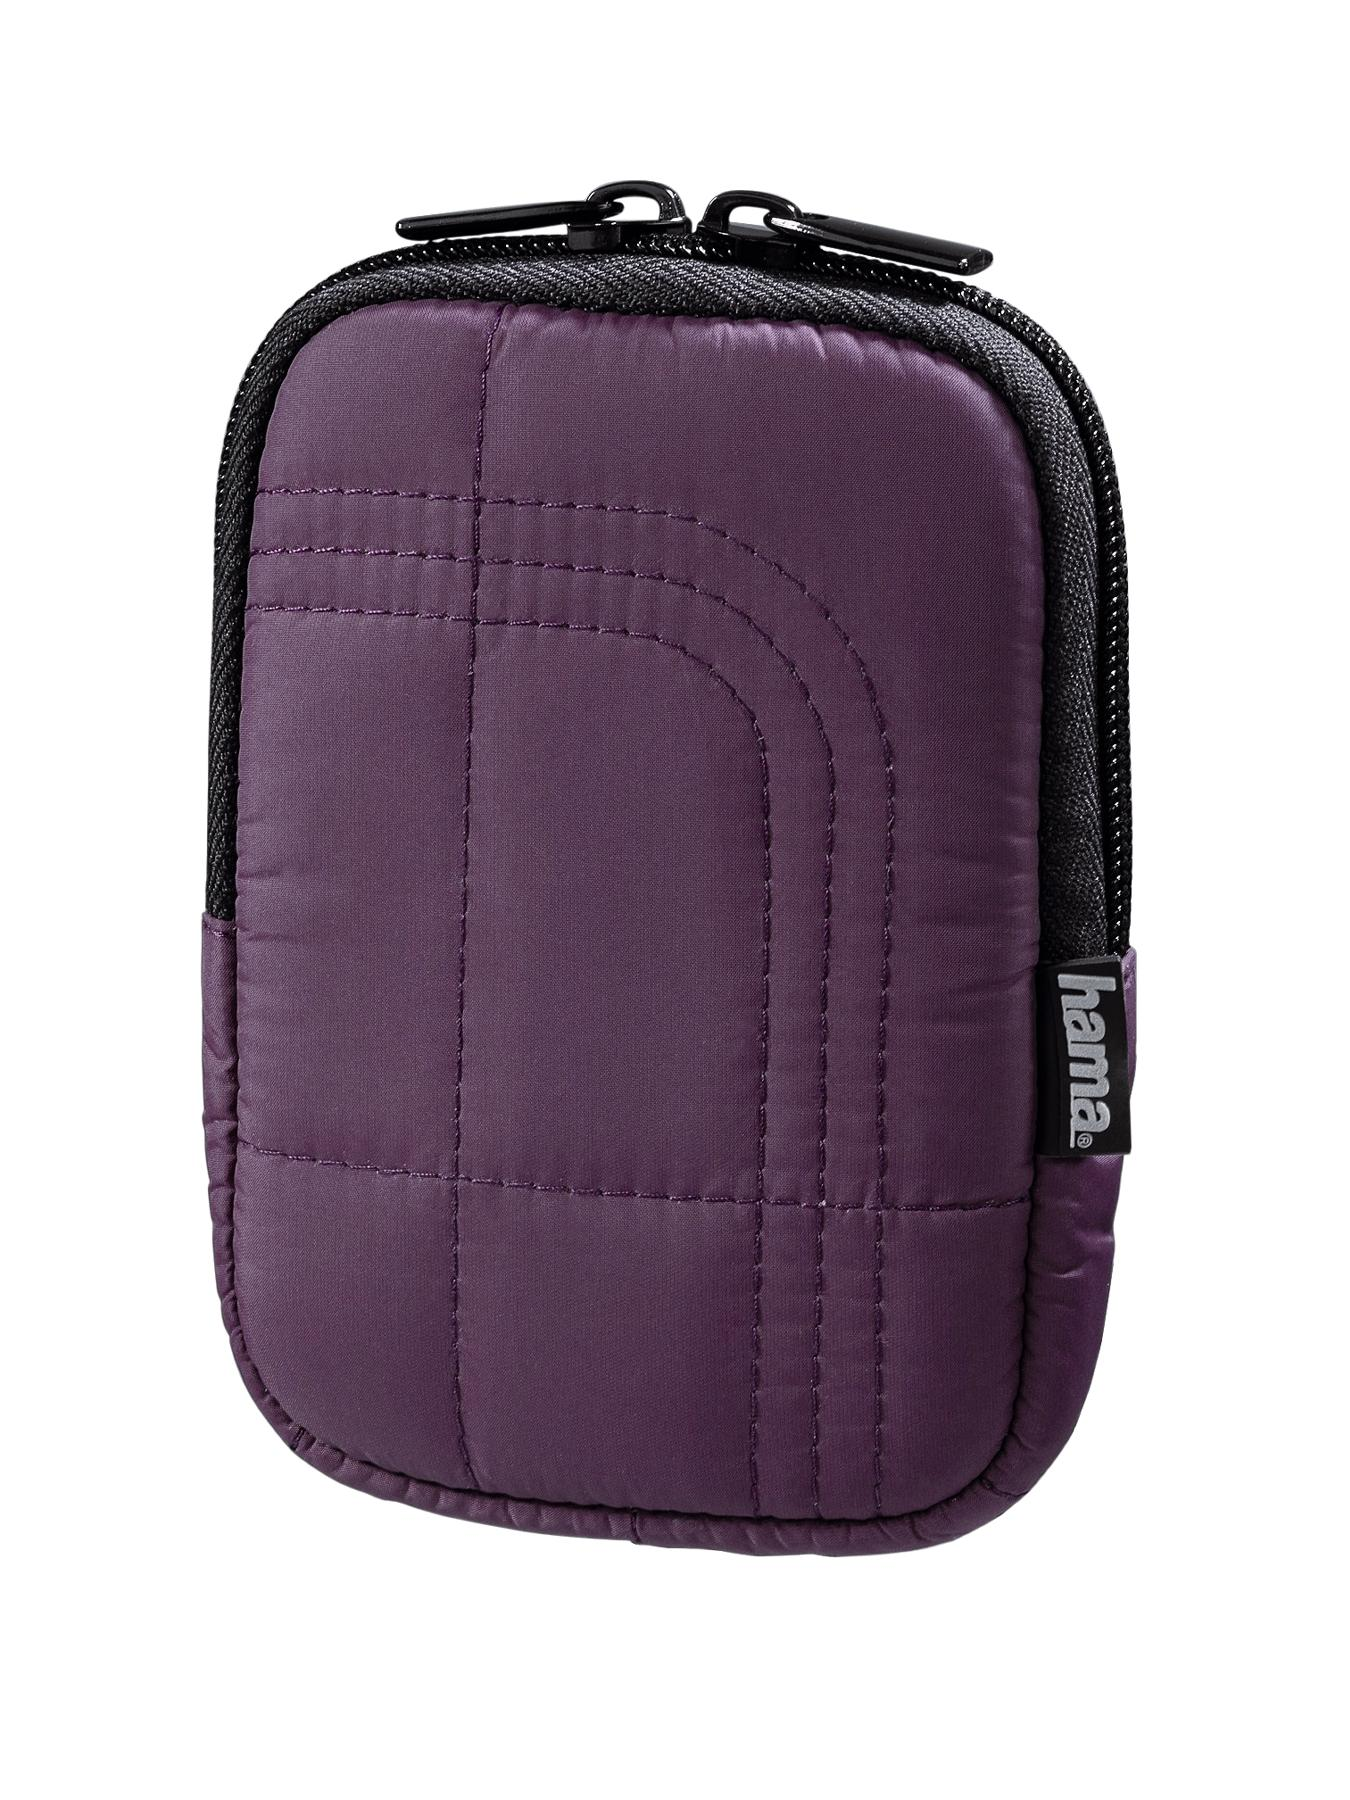 HAMA Fancy Memory 60C Camera Bag - Purple at Very, from Littlewoods